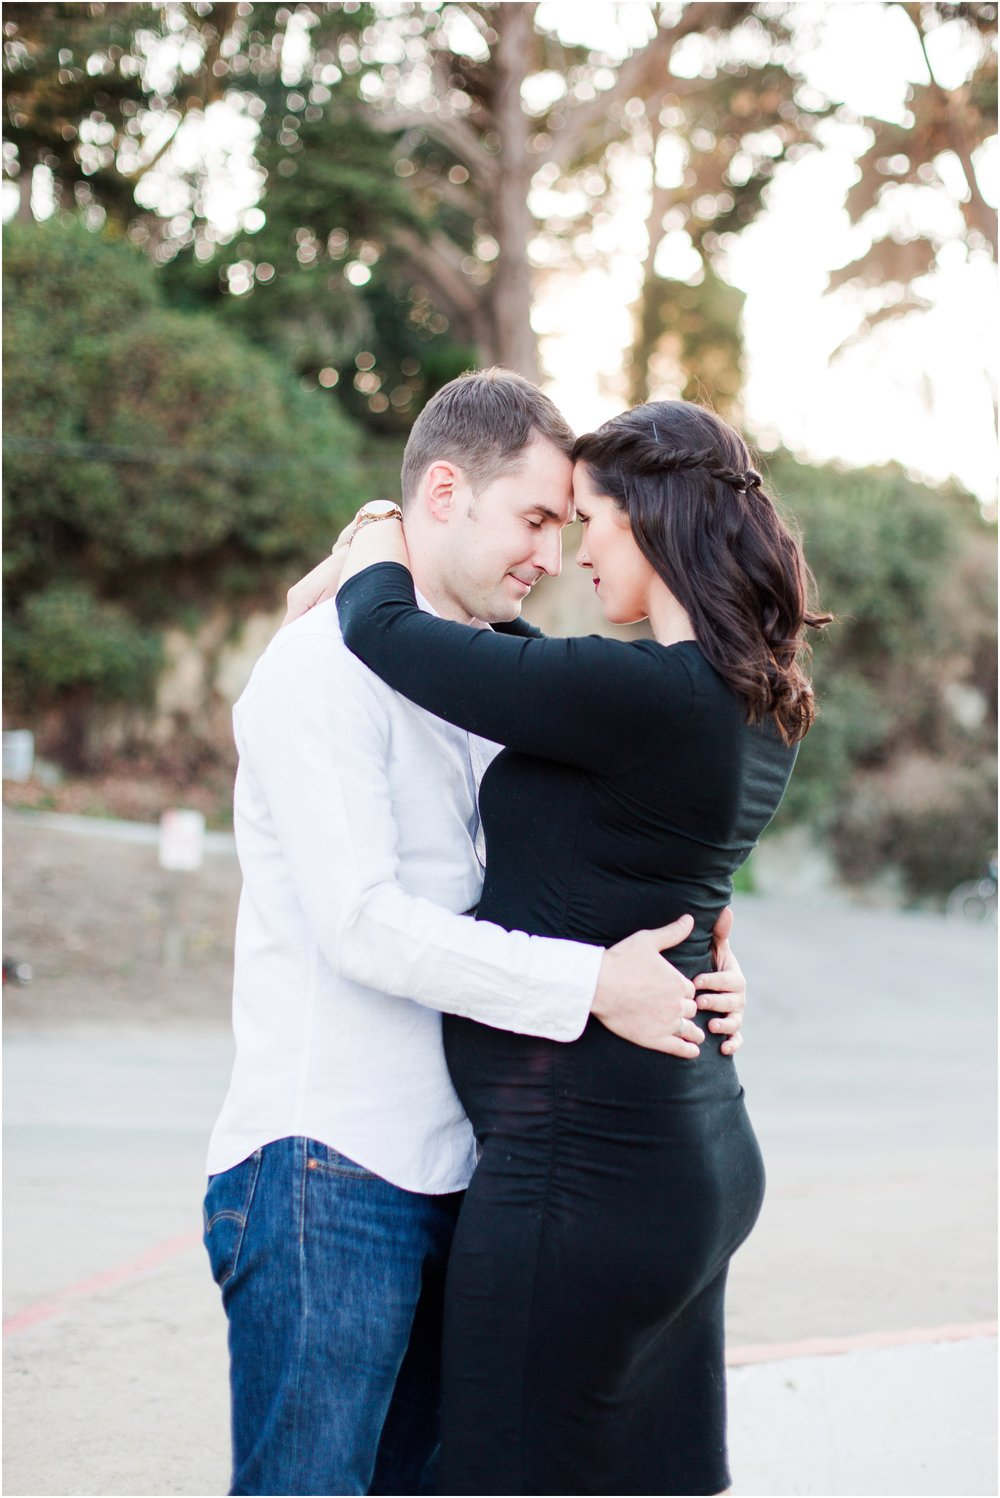 Crissy Field San Francisco maternity pictures by Briana Calderon Photography_0271.jpg